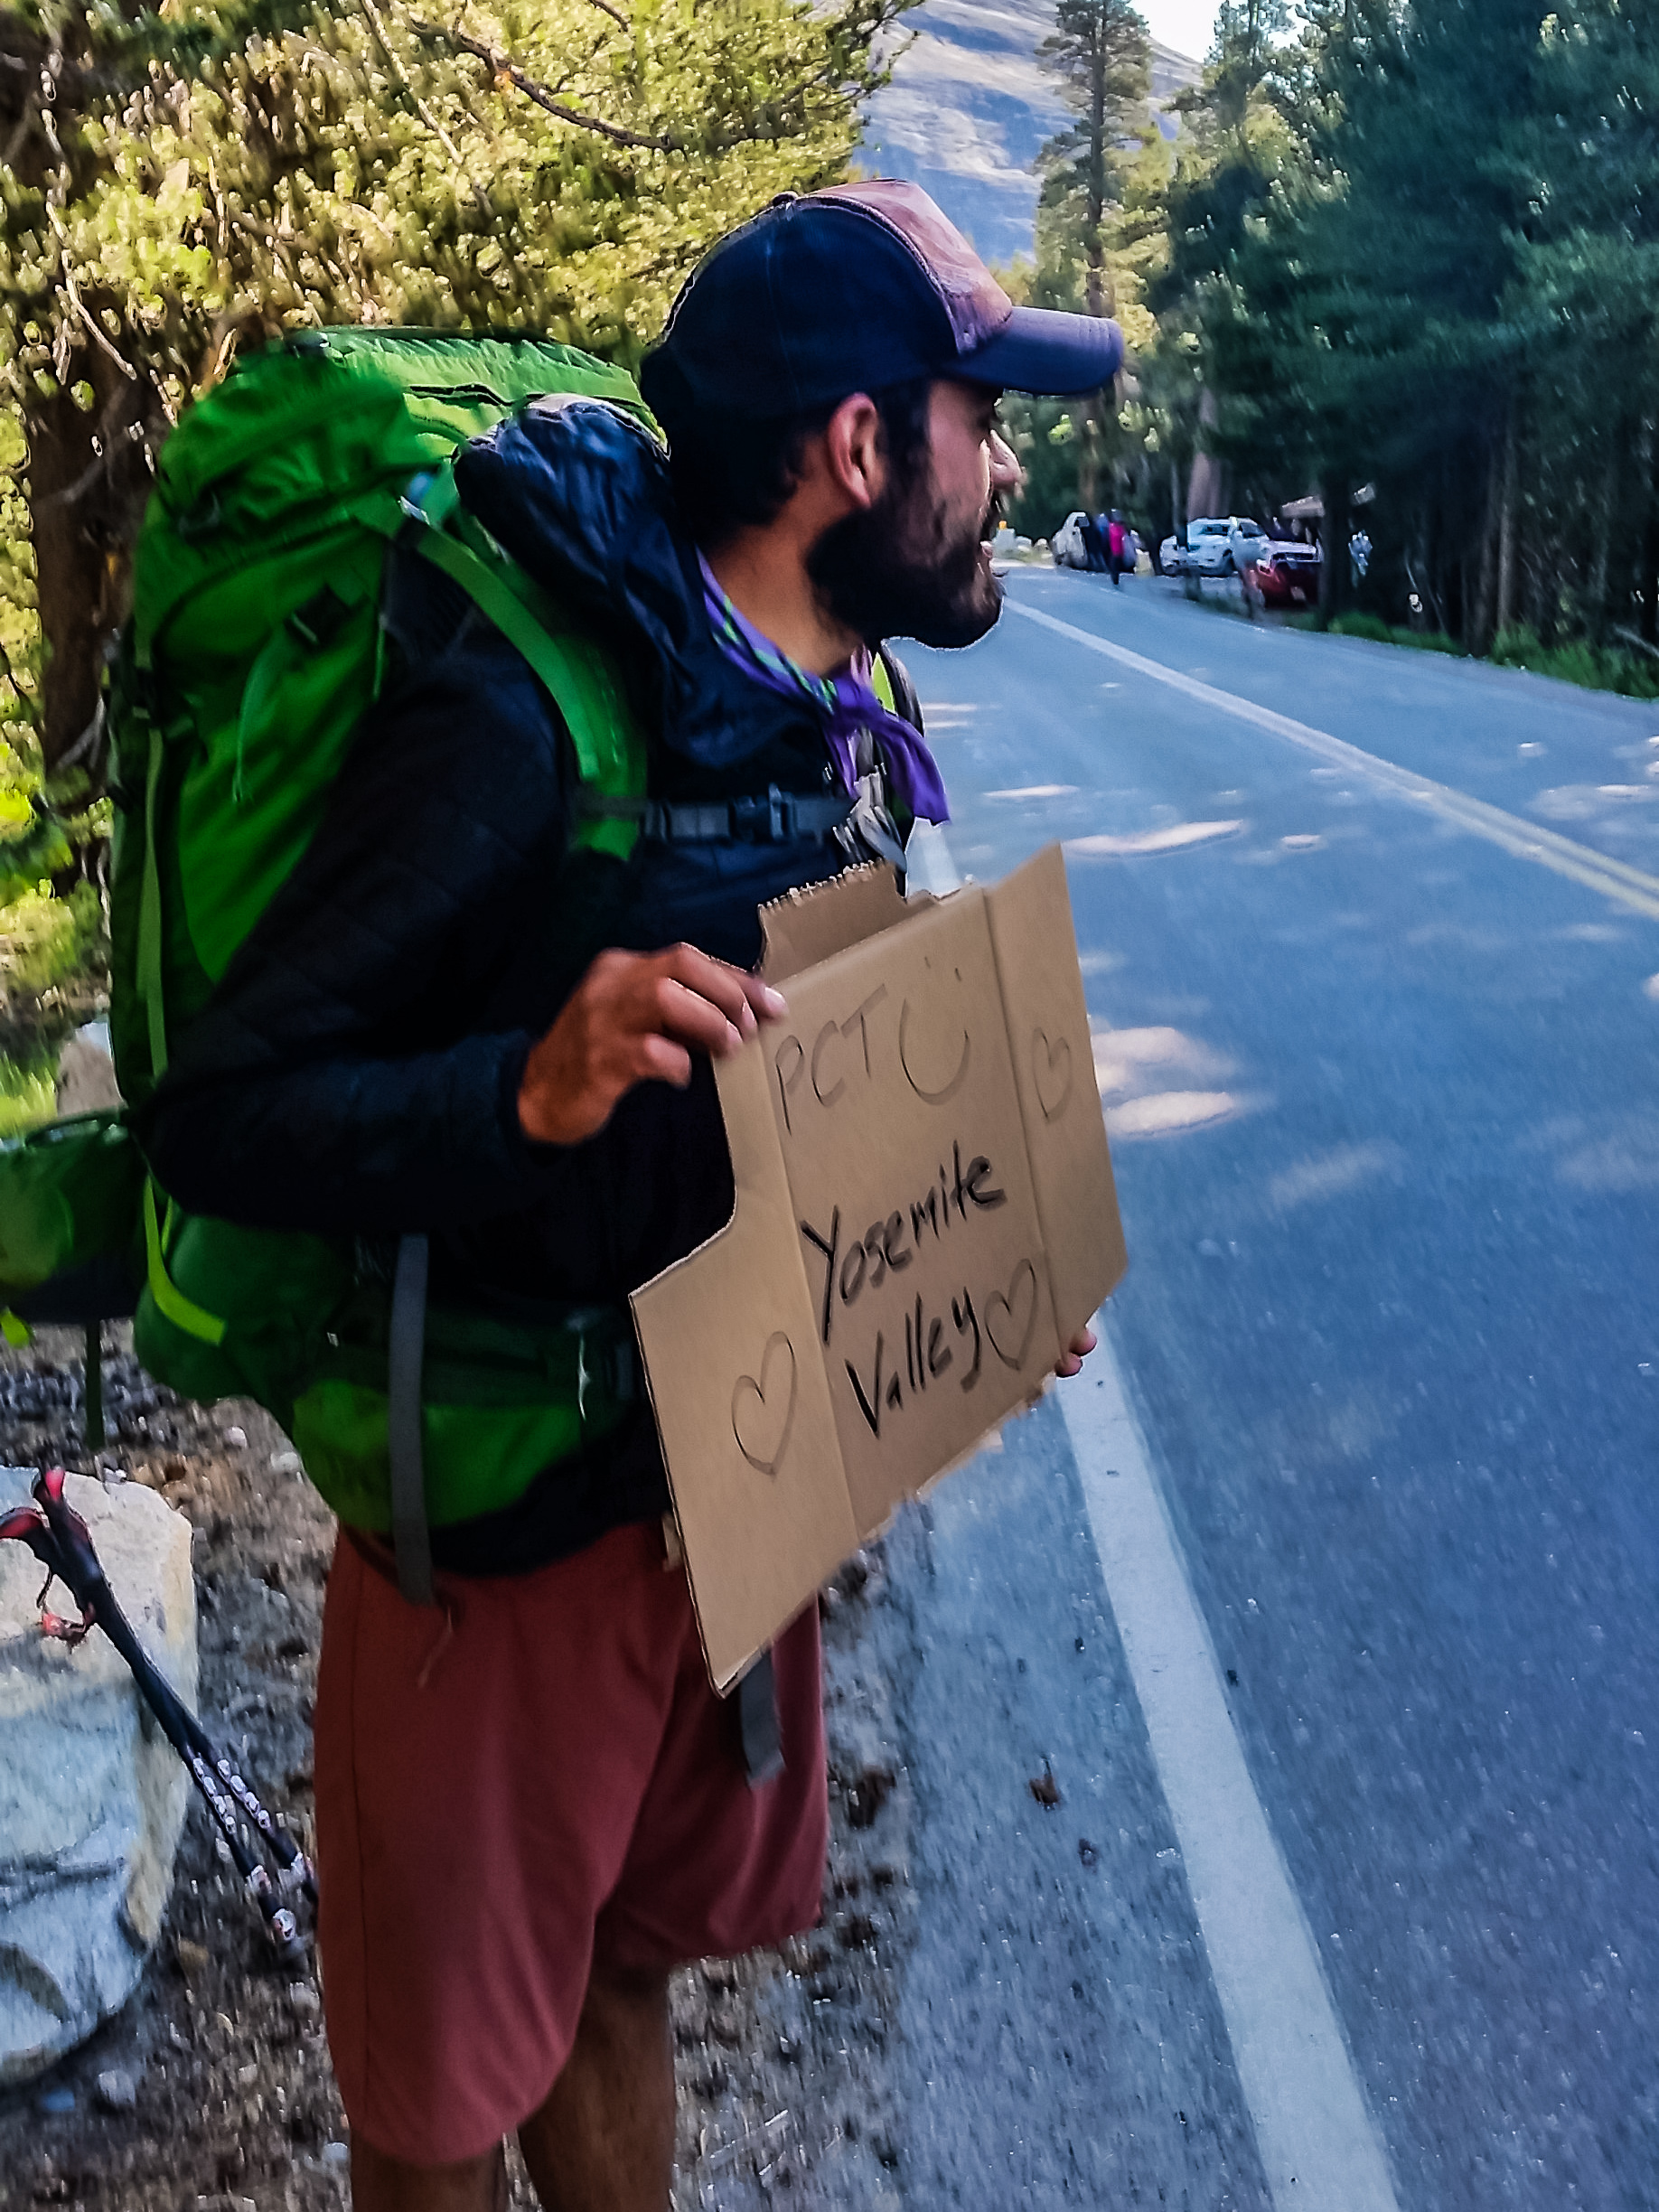 We made it to Tuolumne Meadows and decided to hitchhike to Yosemite Valley